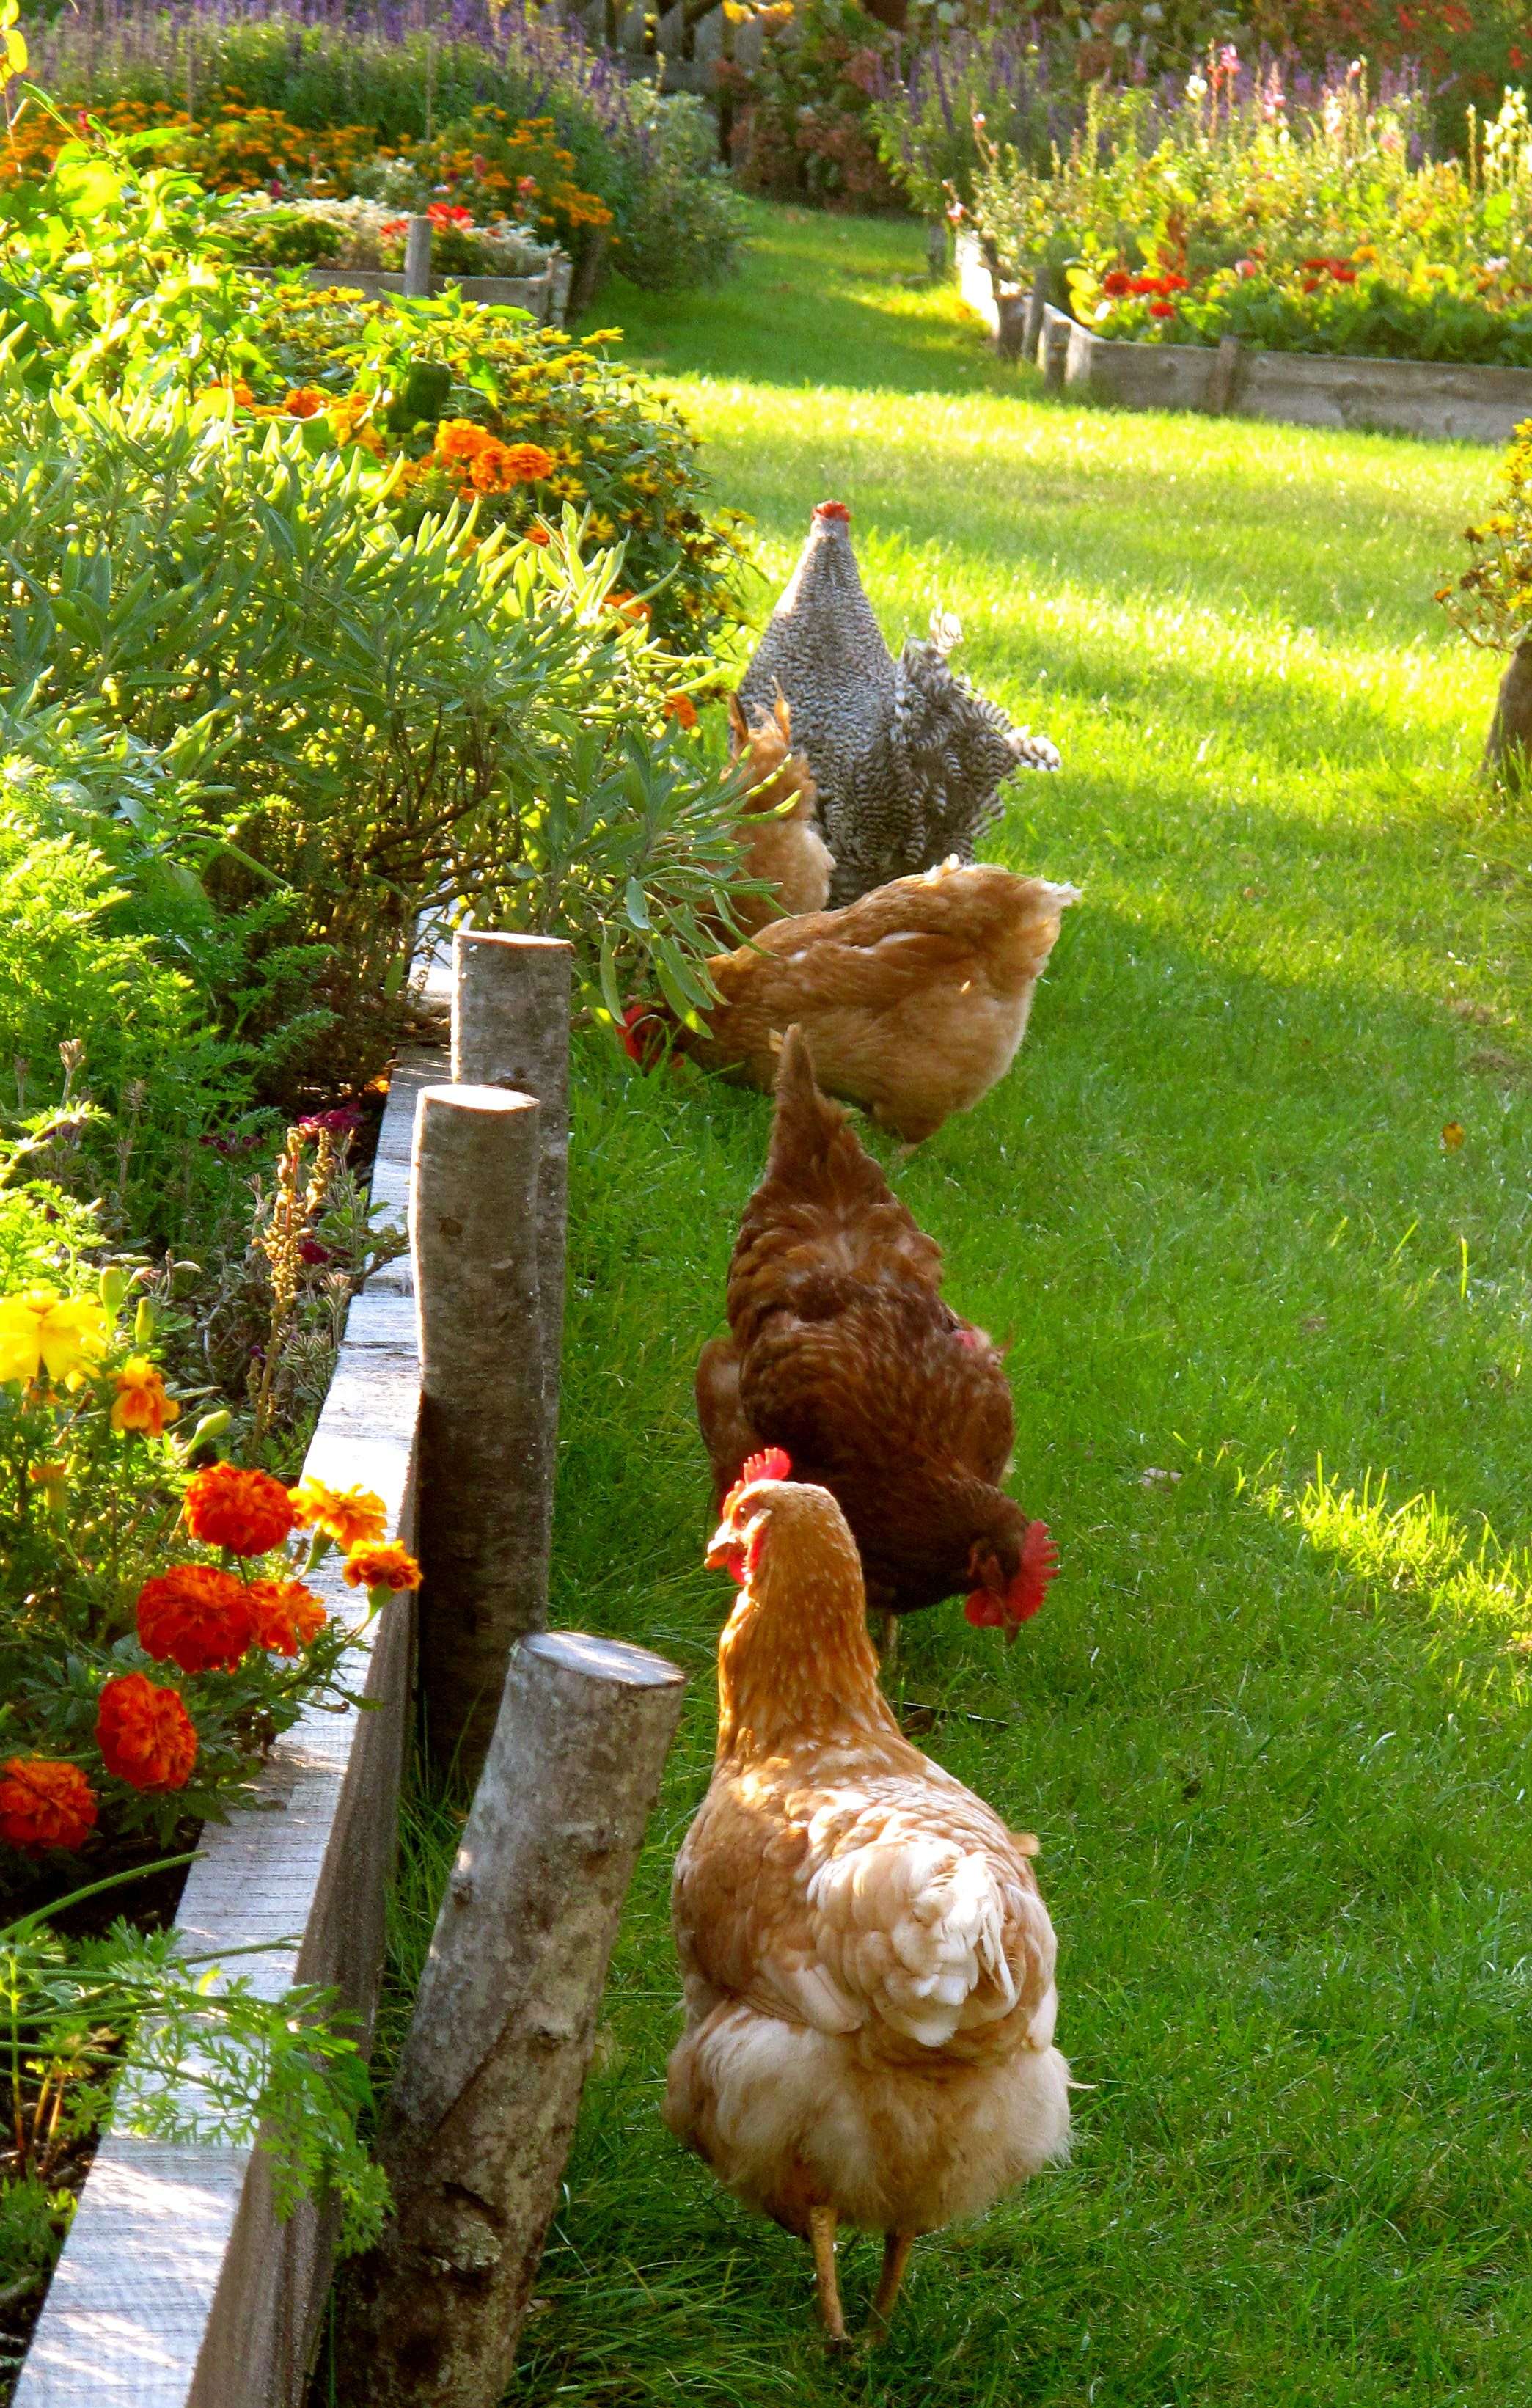 I really need chickens for my yard